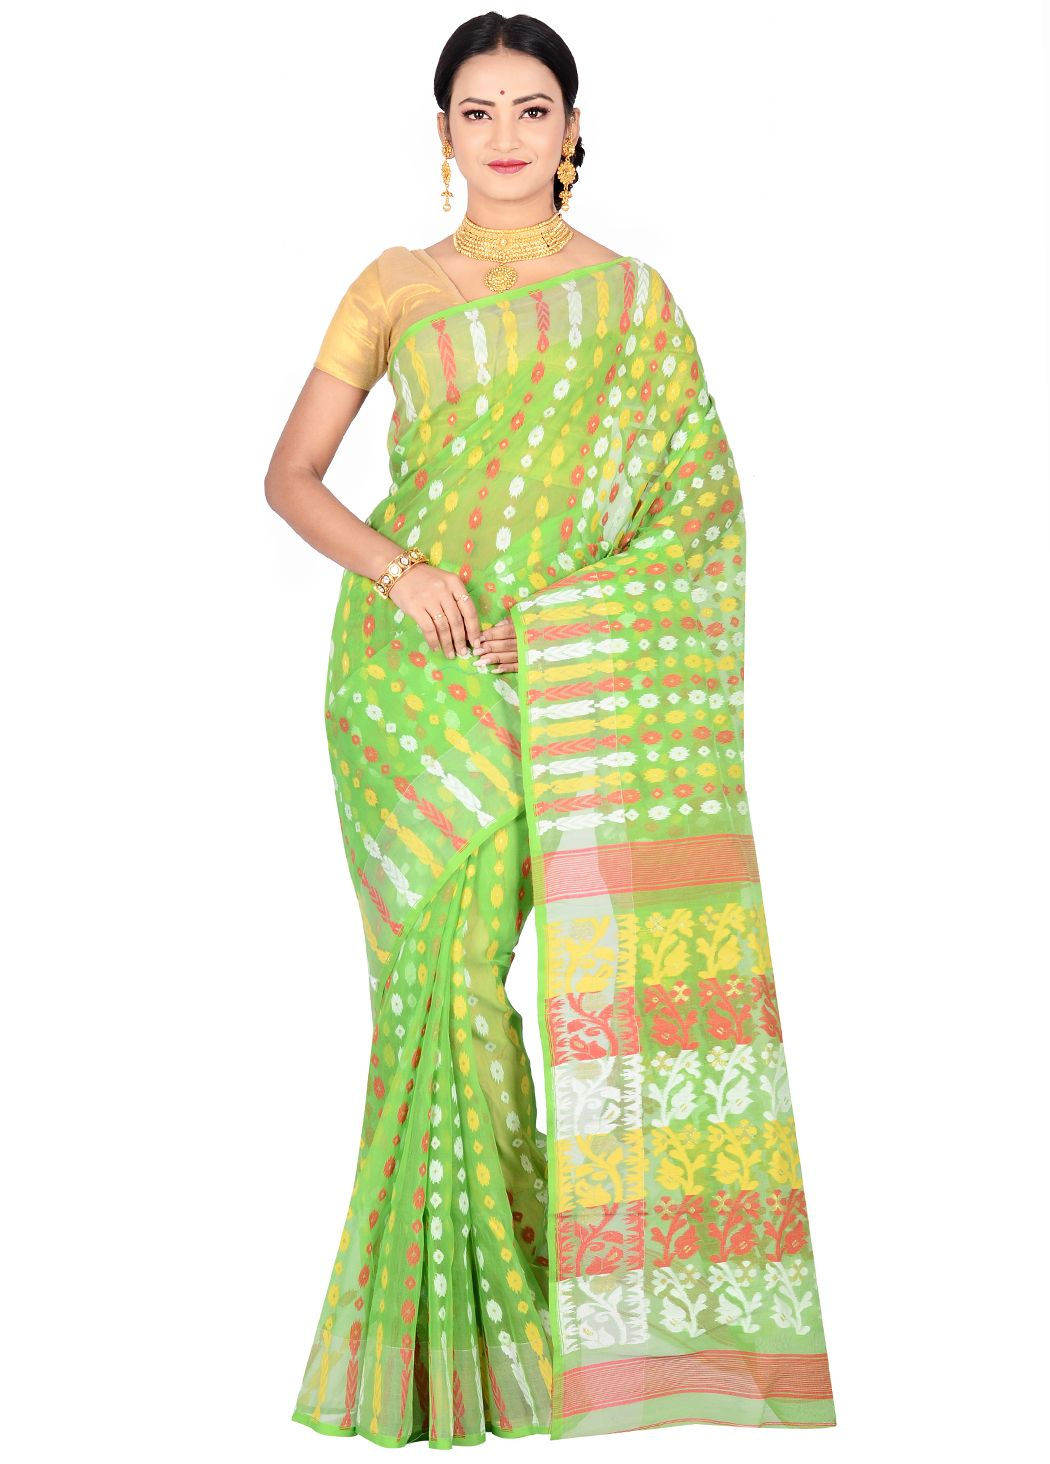 8632f1e62ee24 Green pure tant cotton dhakai jamdani saree displays buttis on the body and  floral designed pallu